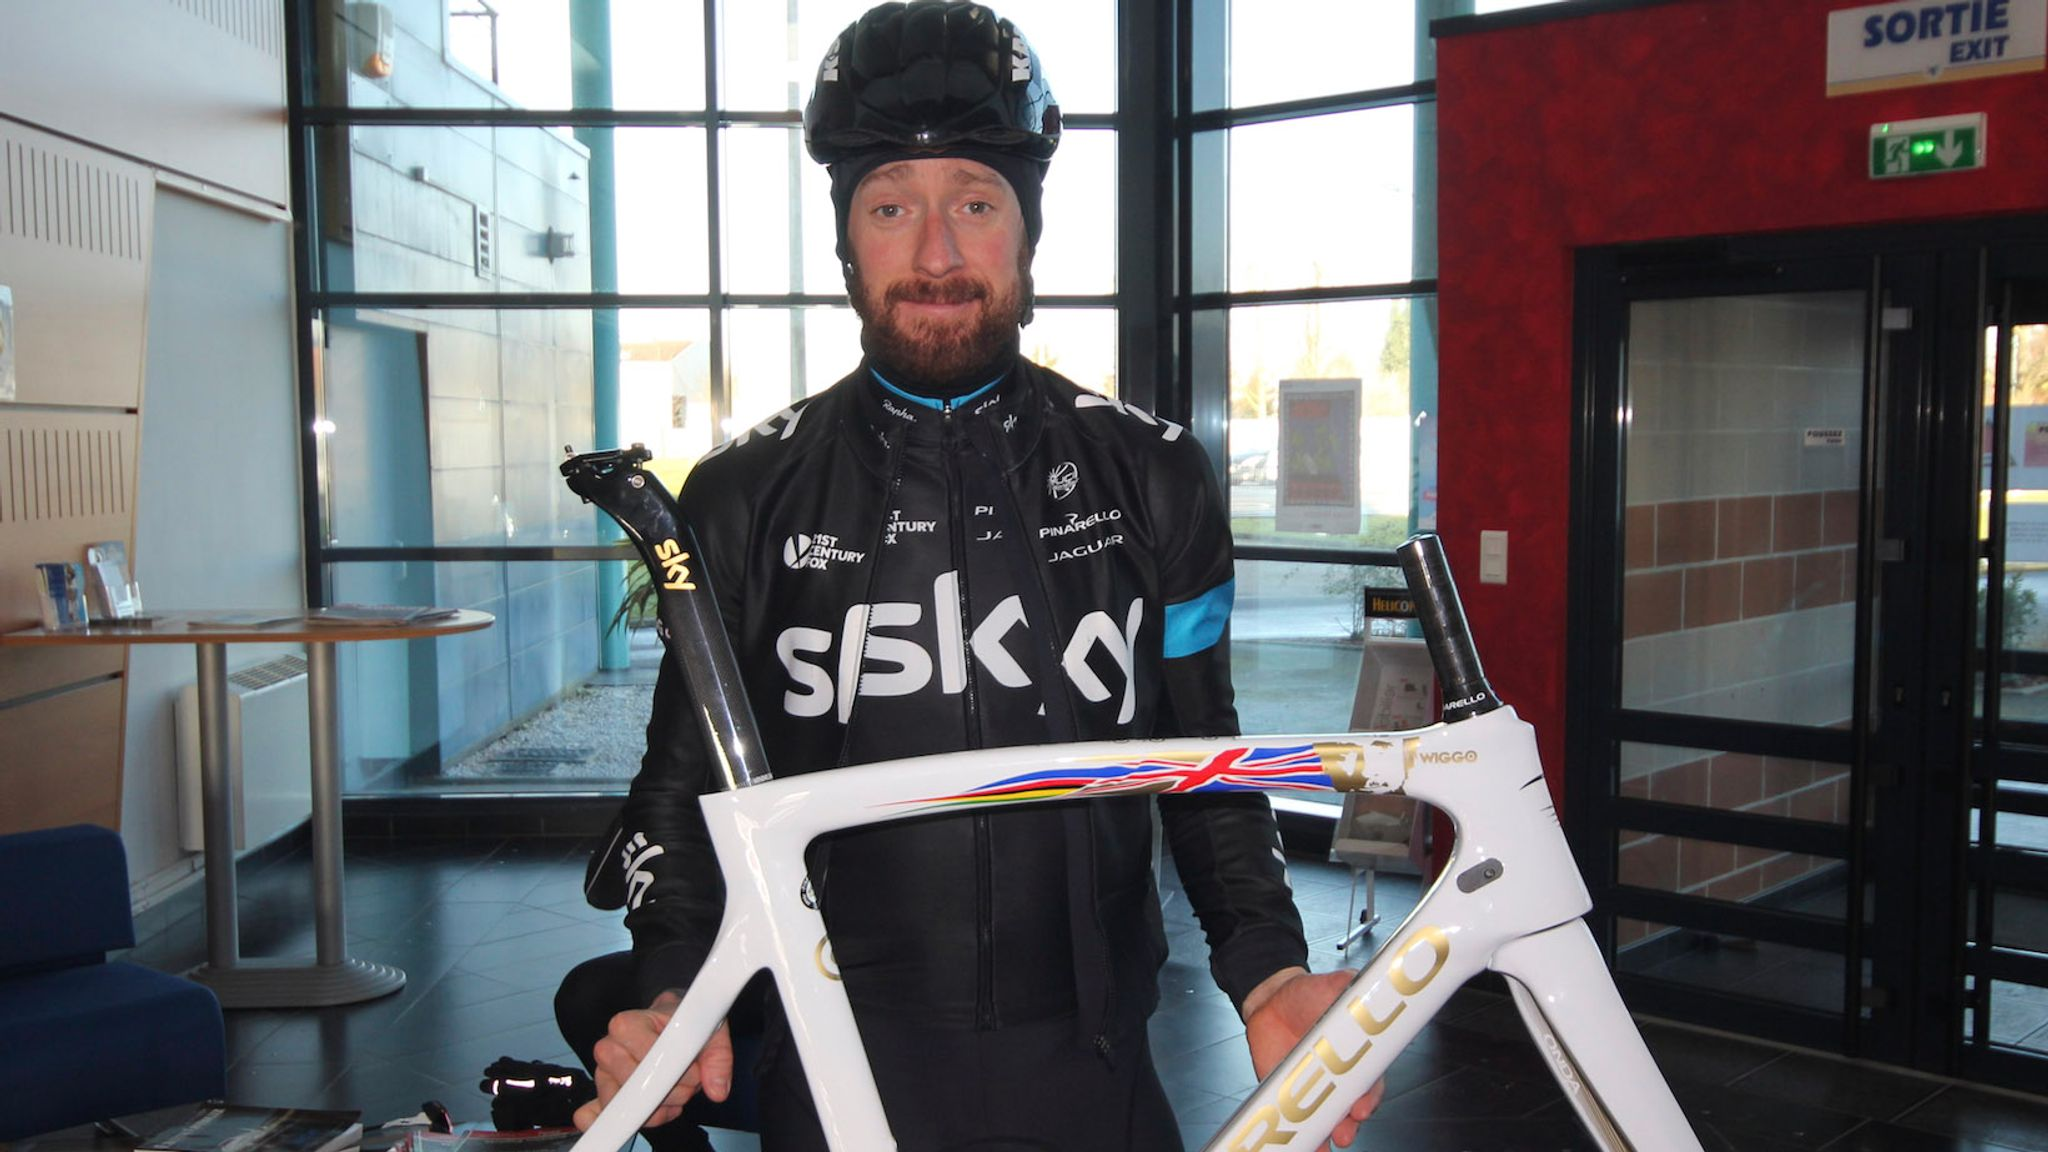 Special Edition Sir Bradley Wiggins Pinarello F8 Frame Launched Cycling News Sky Sports